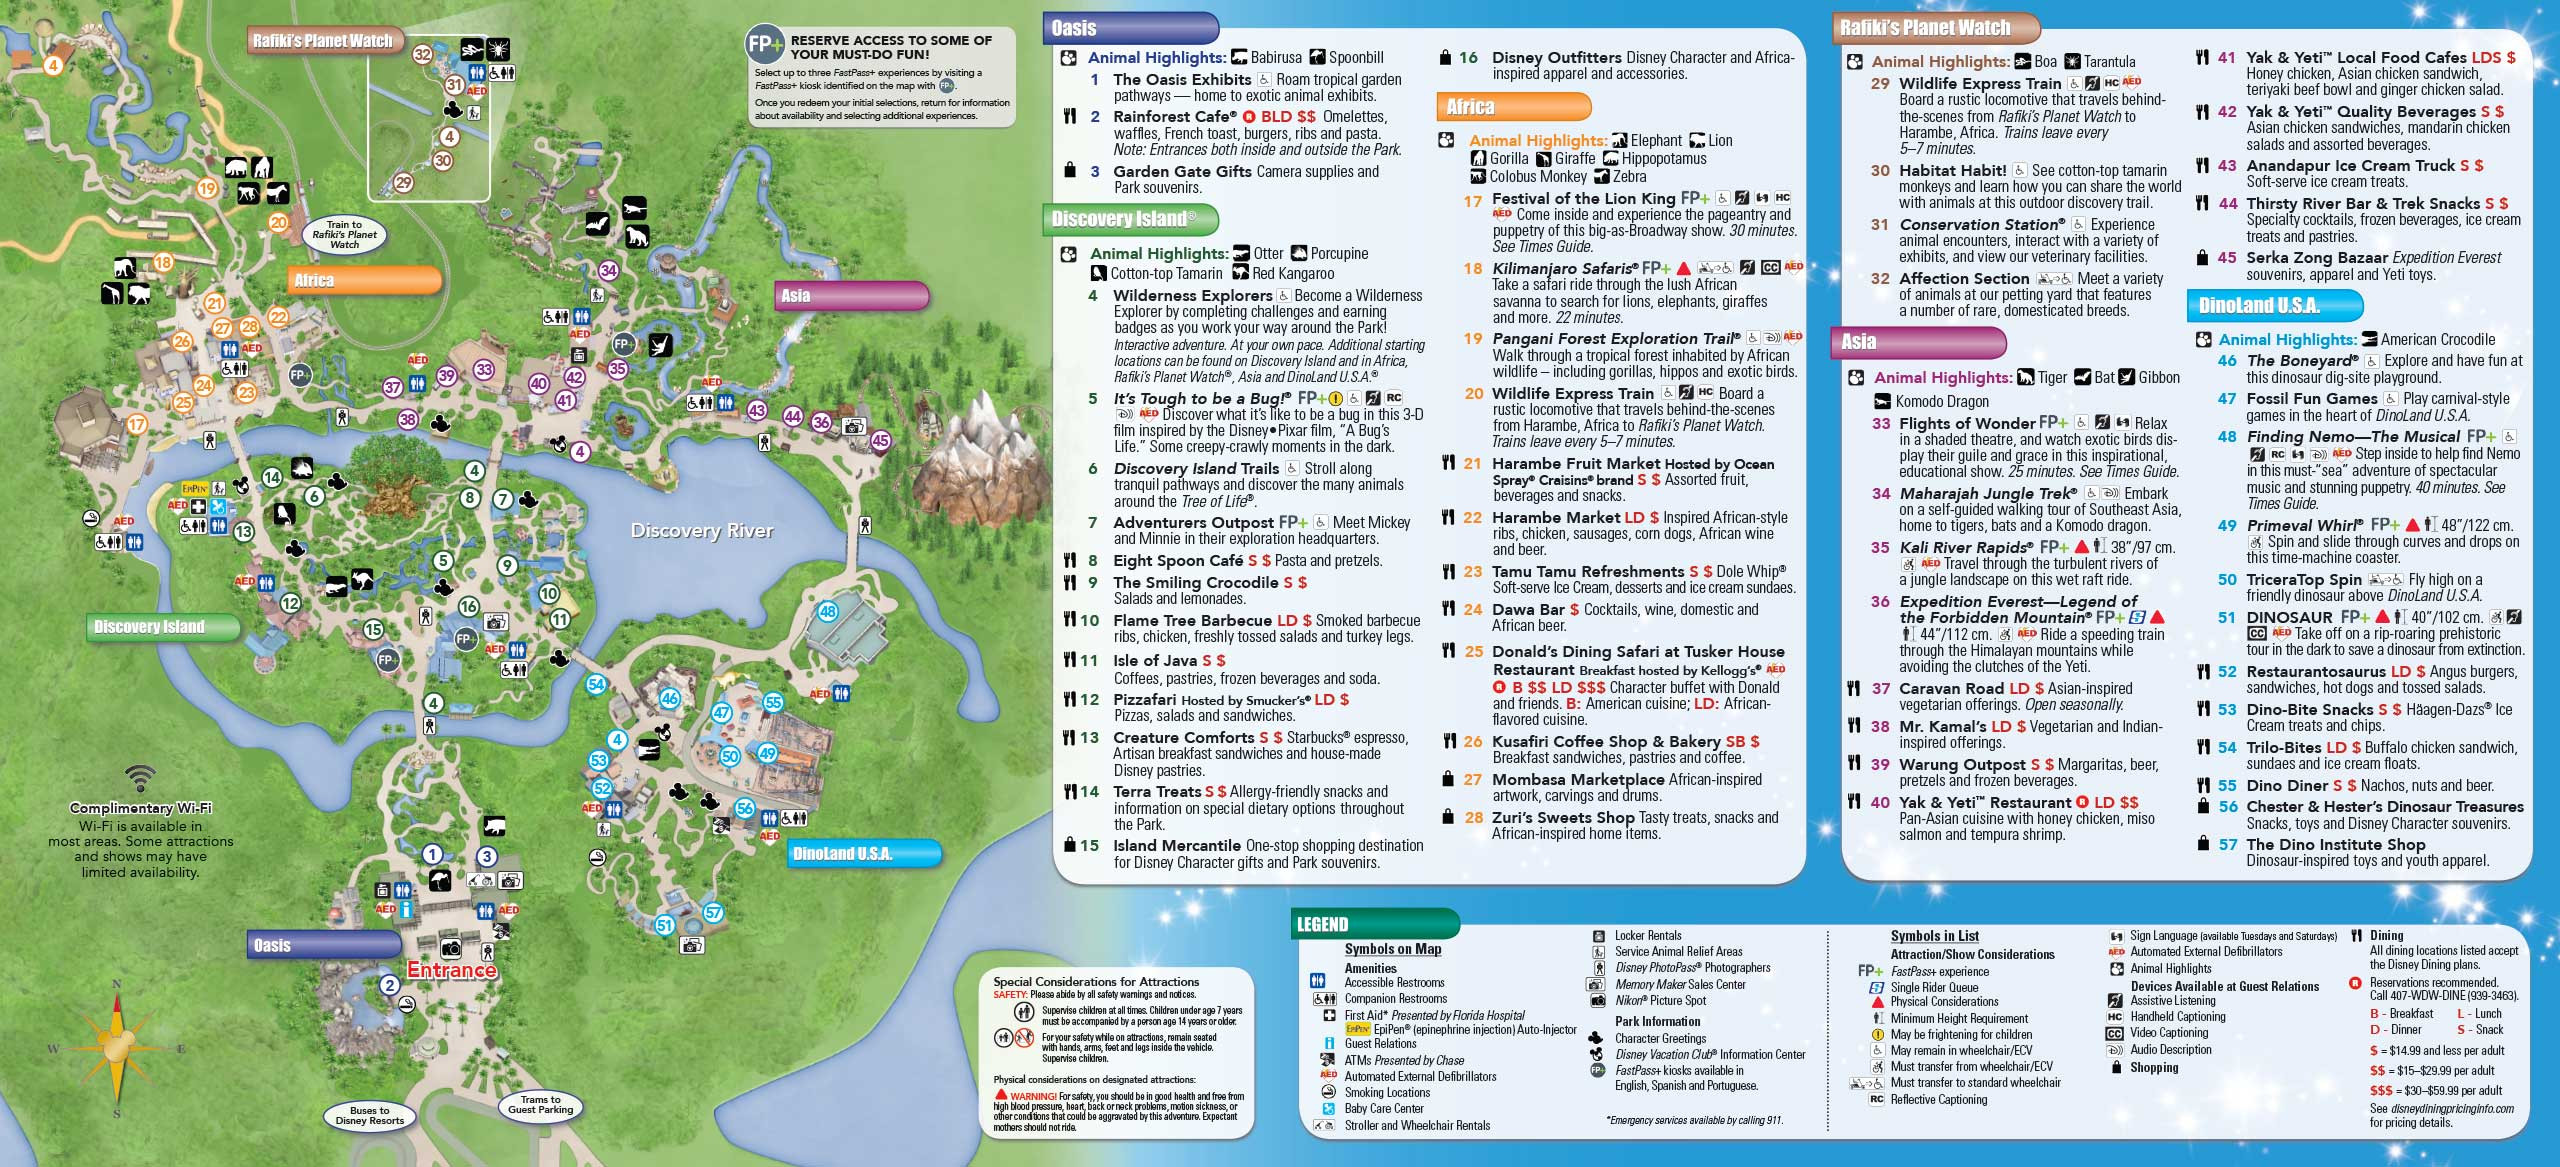 Printable Epcot Map 2018 Best Of Walt Disney World Maps within Map Pdf Utlr Me and soloway at